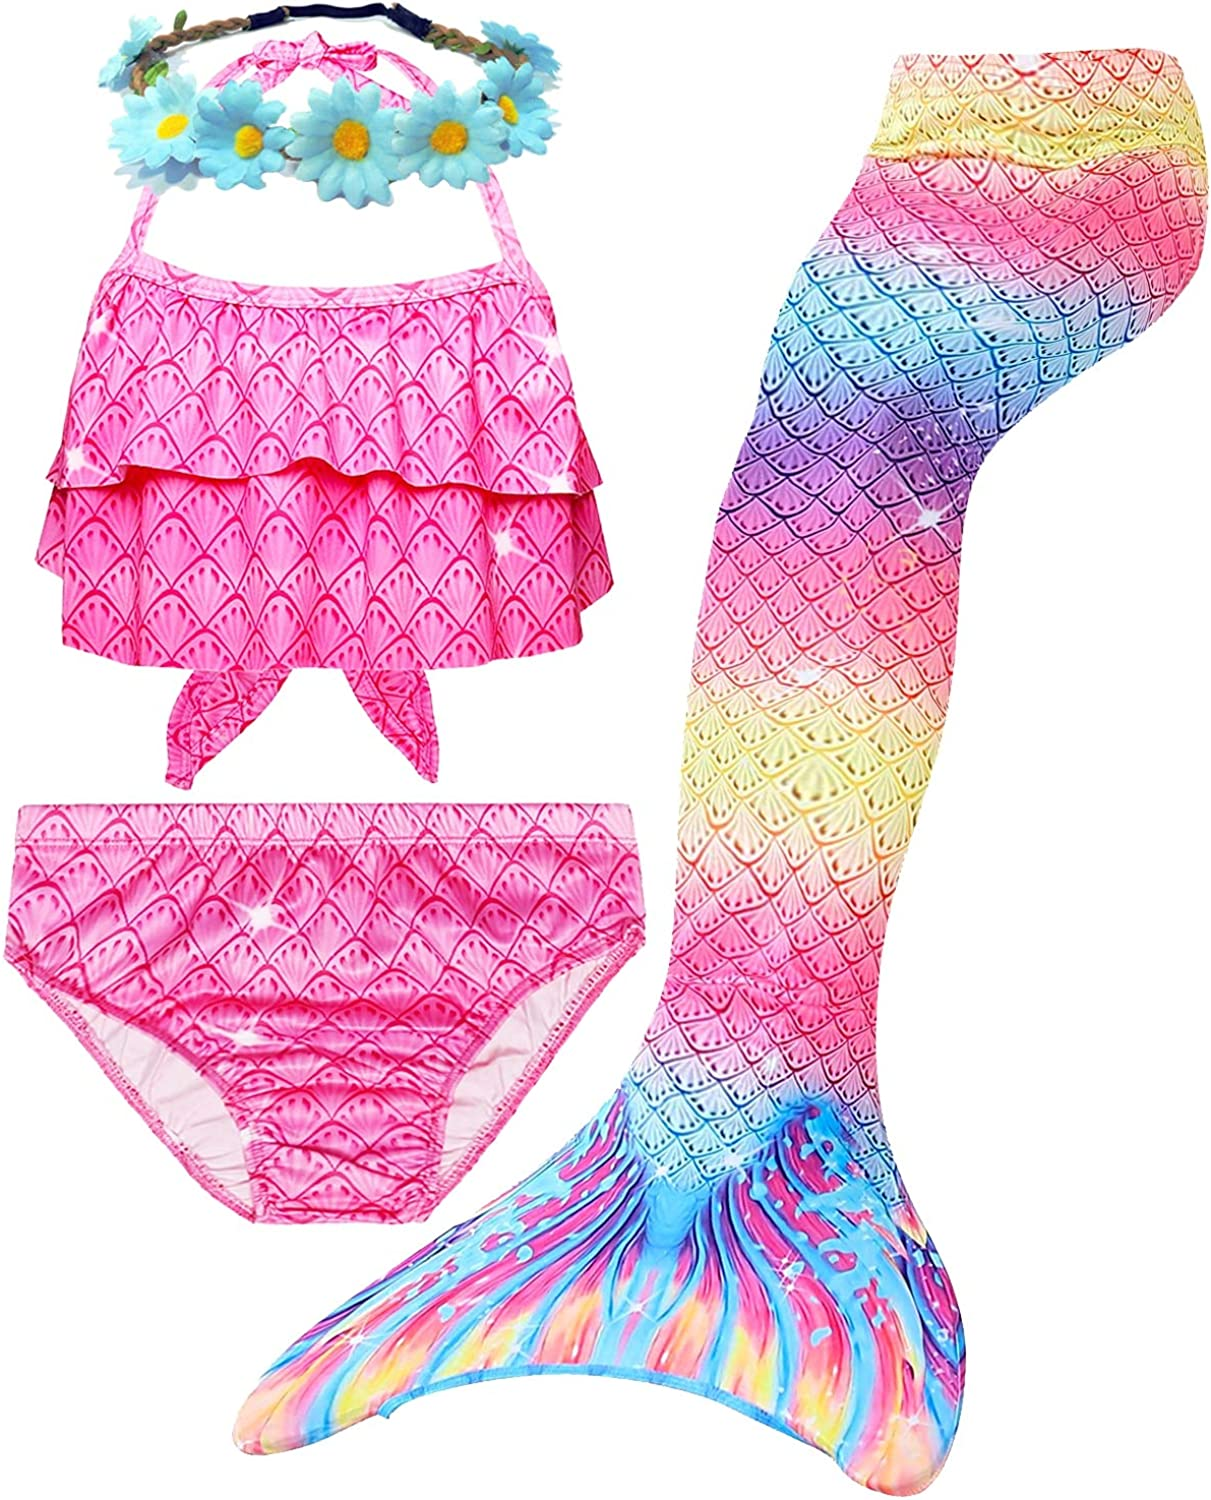 4 Pcs Girls Swimsuit Mermaid Set Swimming Cos Safety Max 53% OFF and trust Bikini for